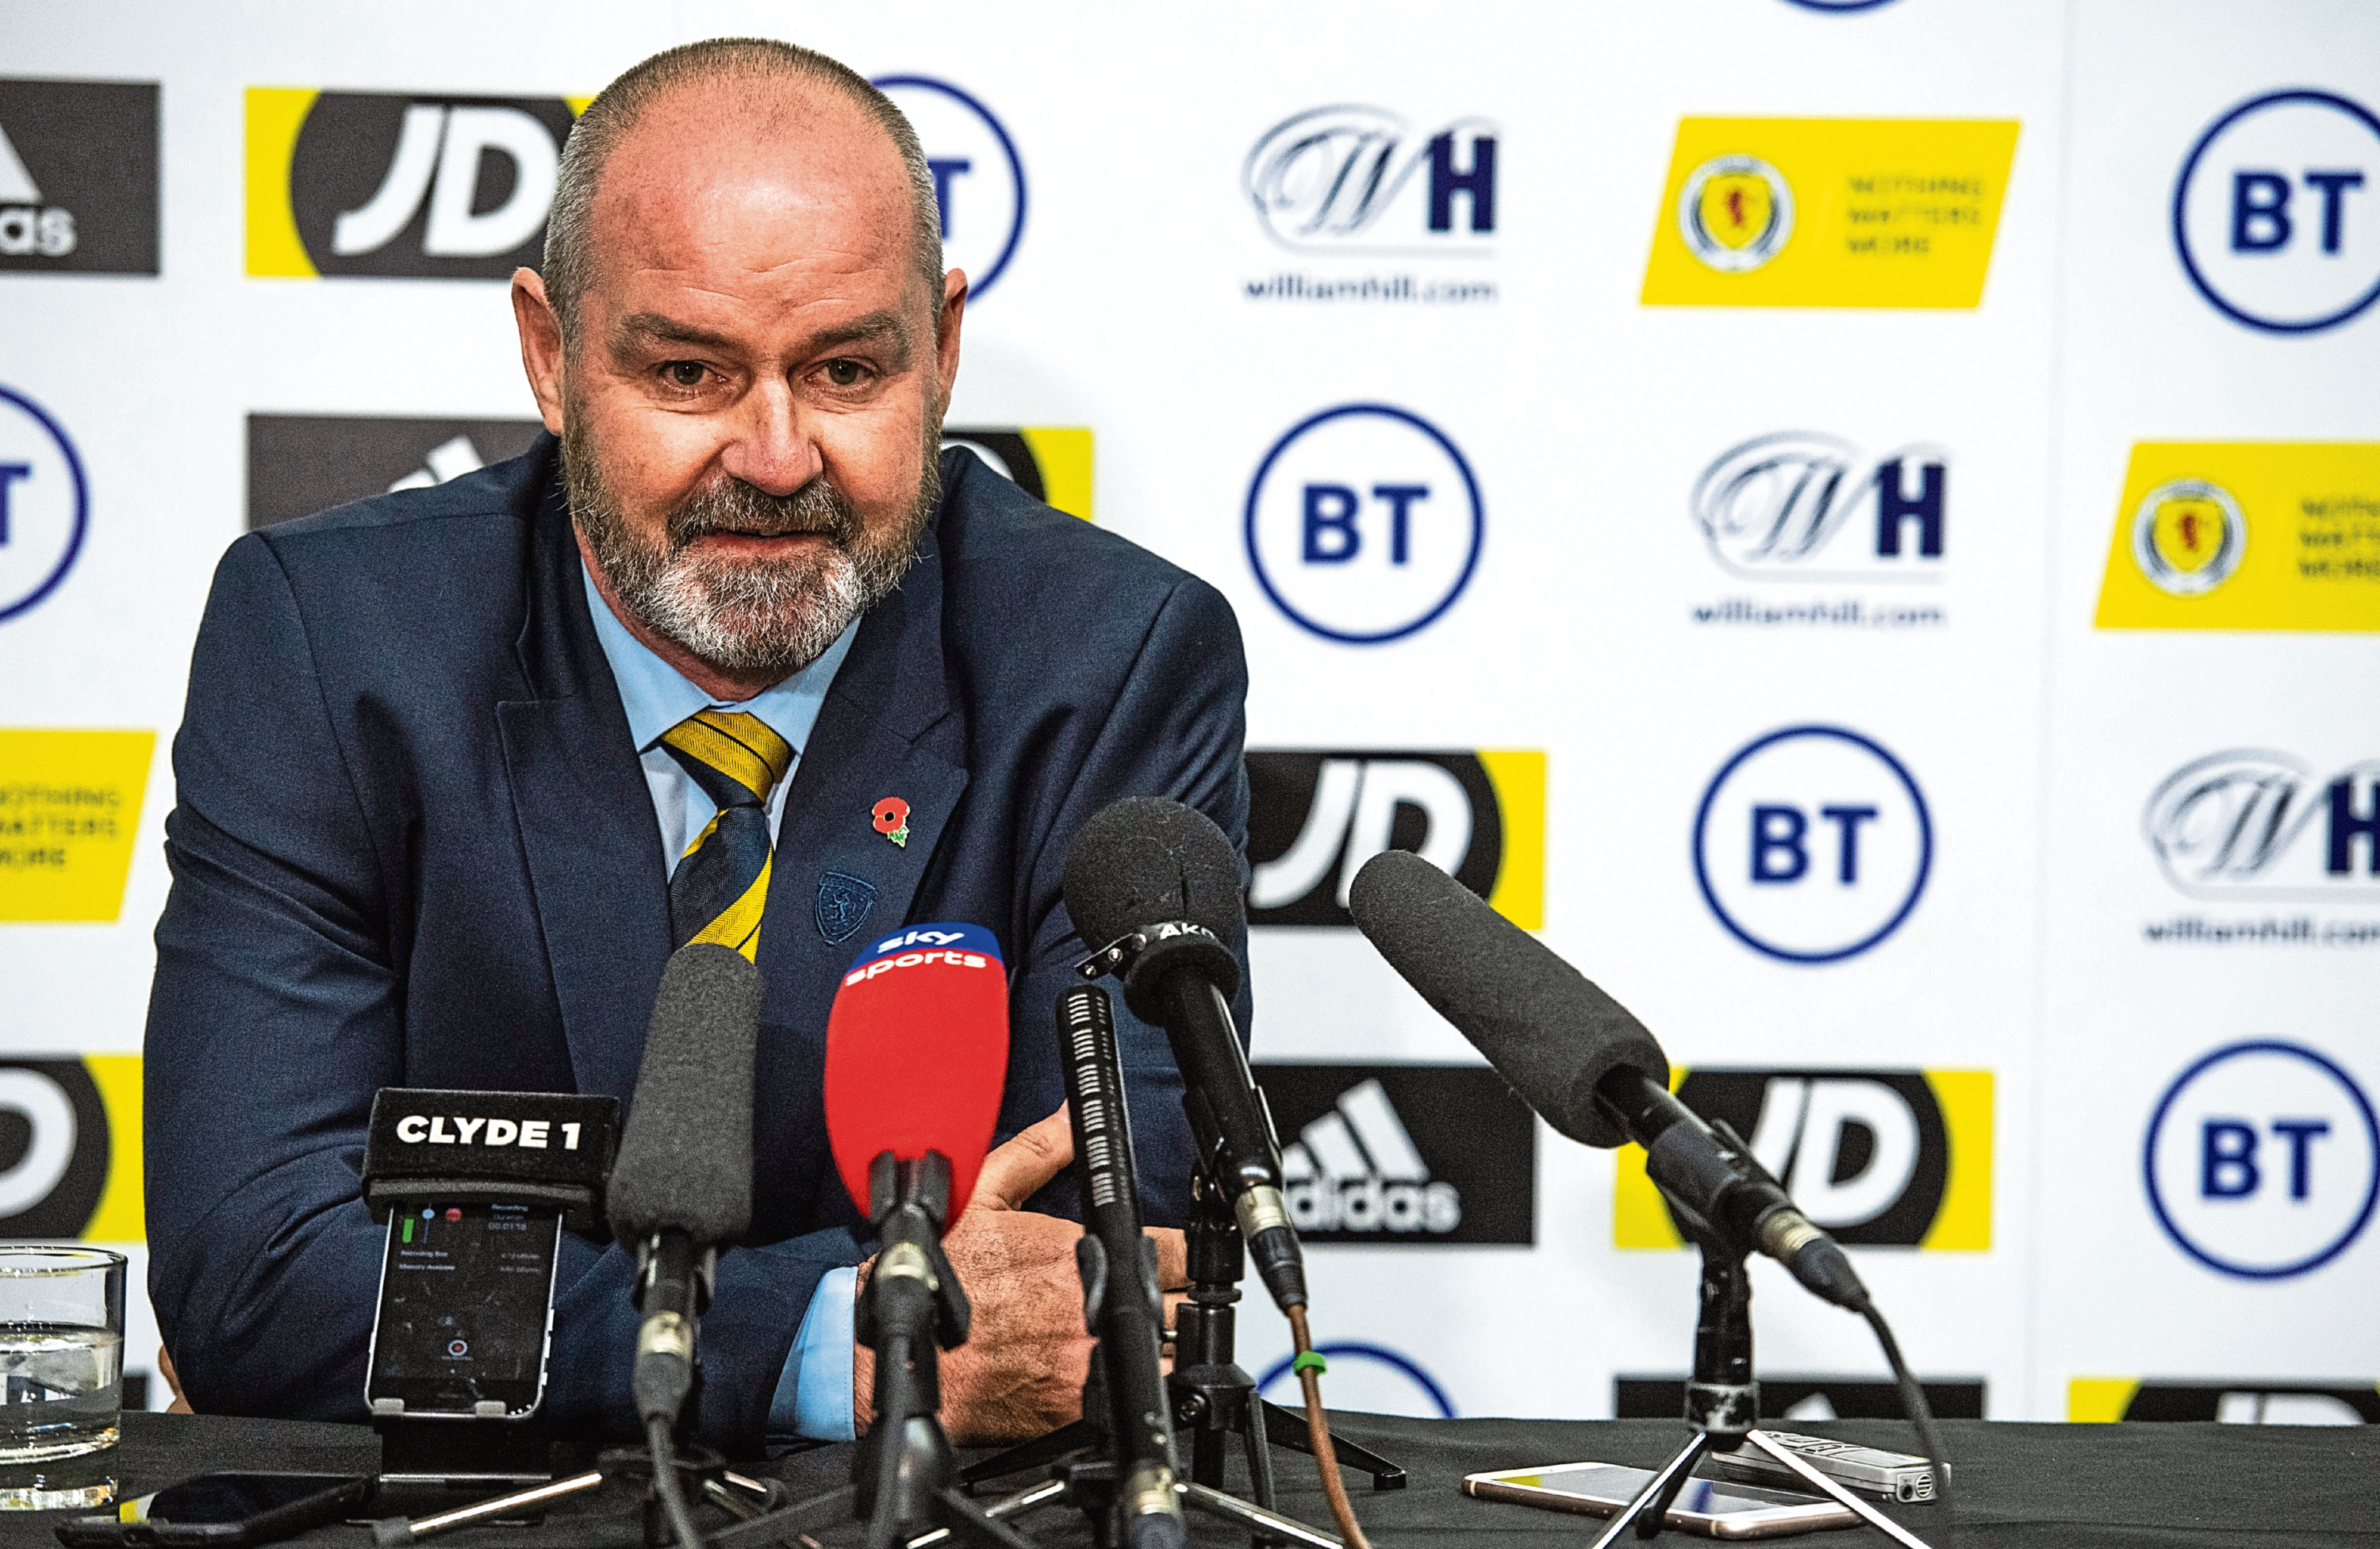 Scotland head coach Steve Clarke names his squad for the forthcoming UEFA Euro 2020 qualifying matches against Cyprus and Kazakhstan.